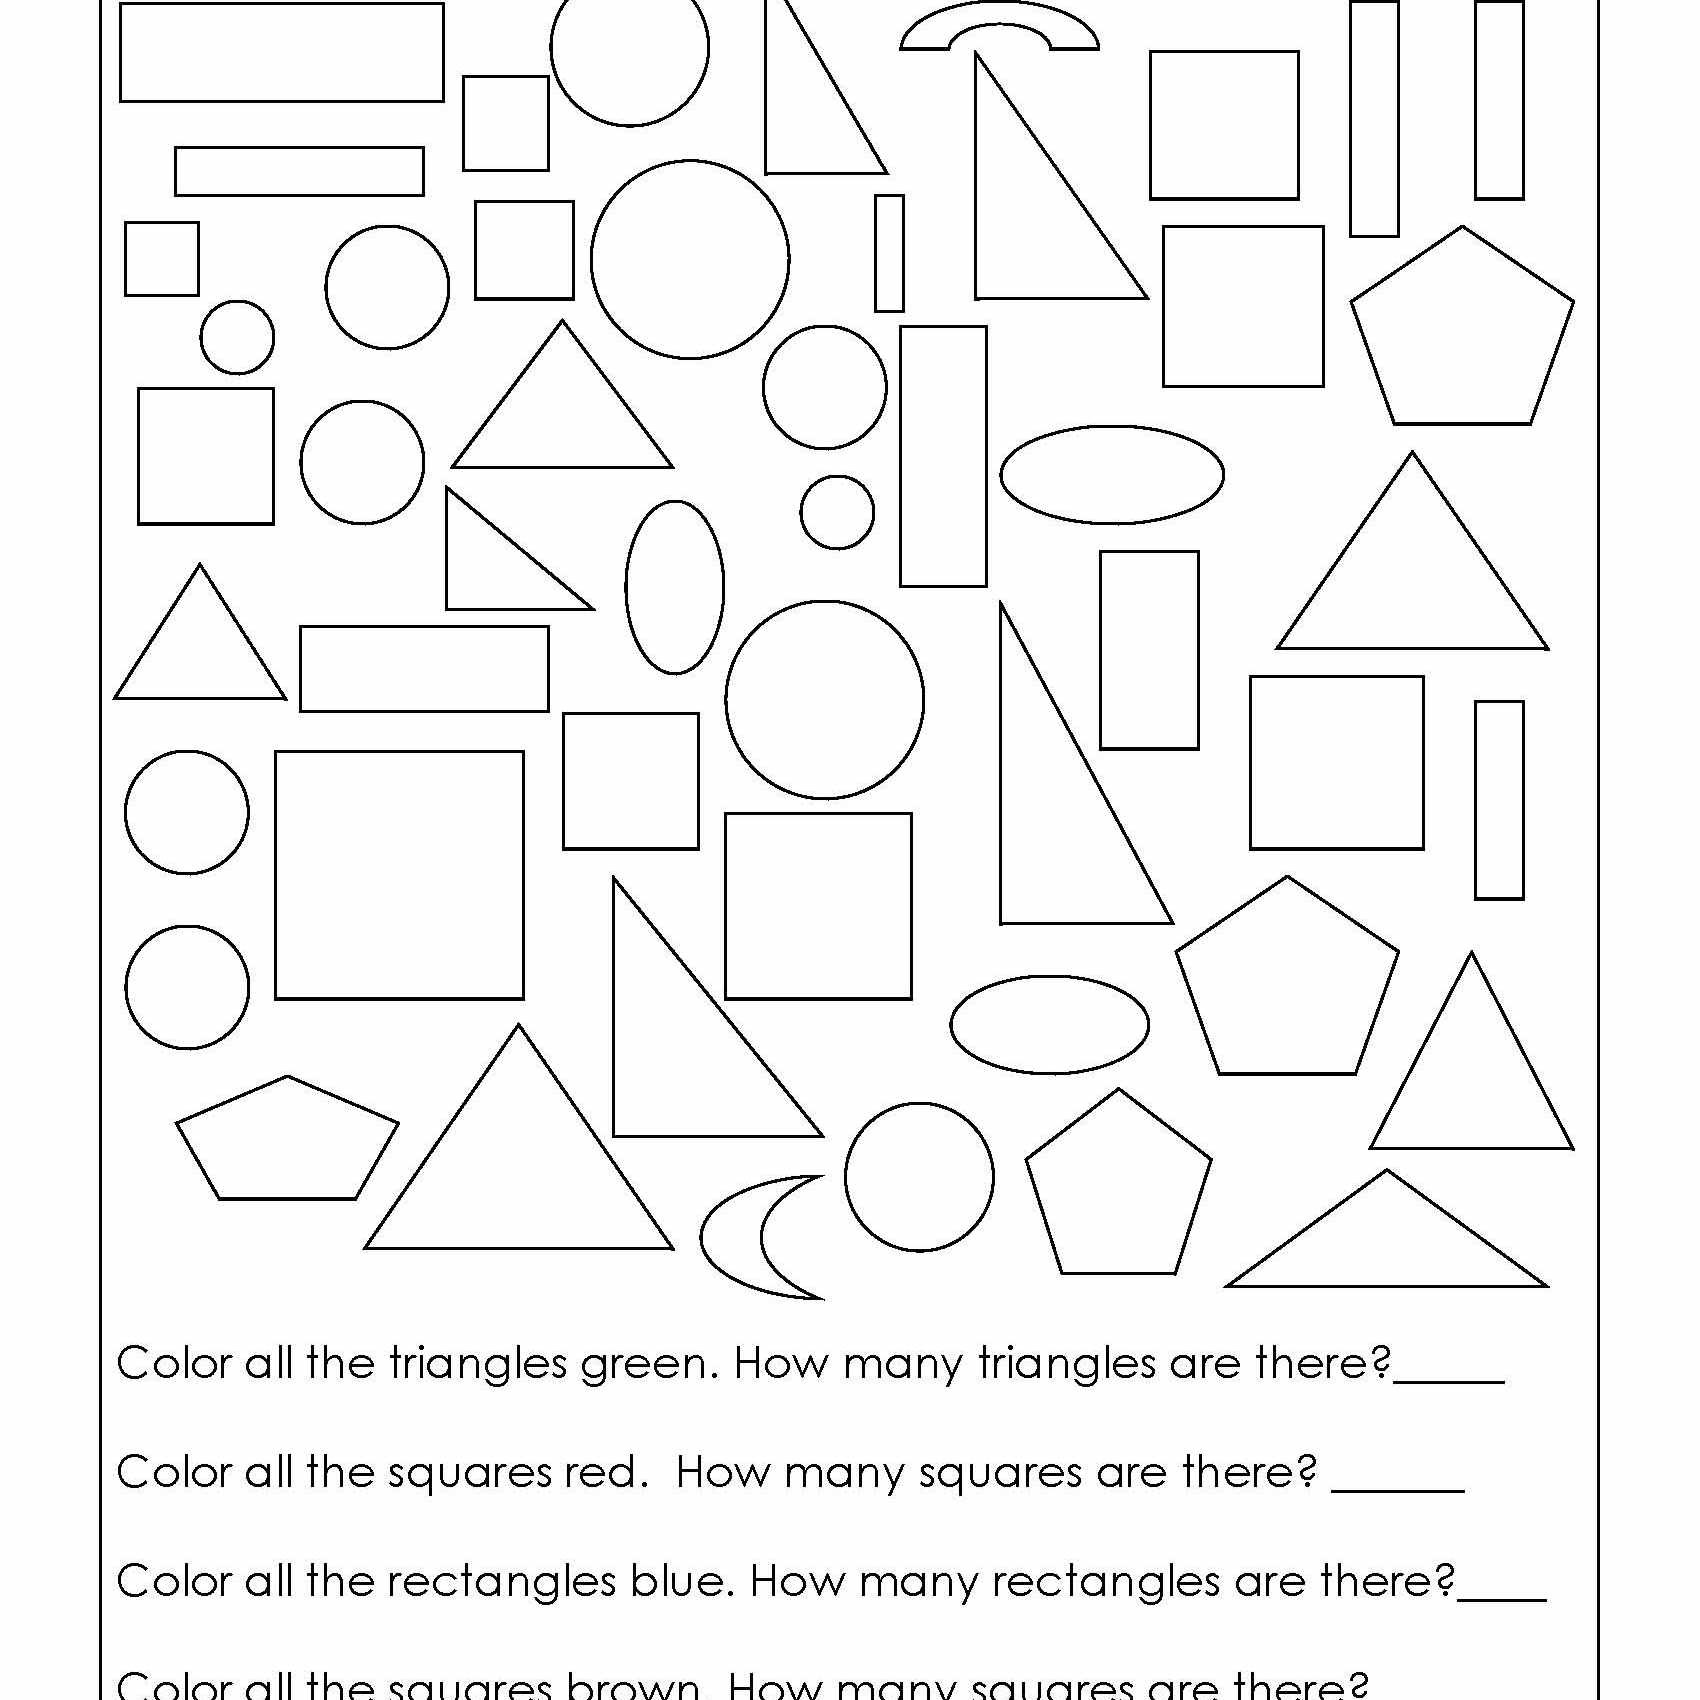 Sorting Worksheets for First Grade Geometry Worksheets for Students In 1st Grade